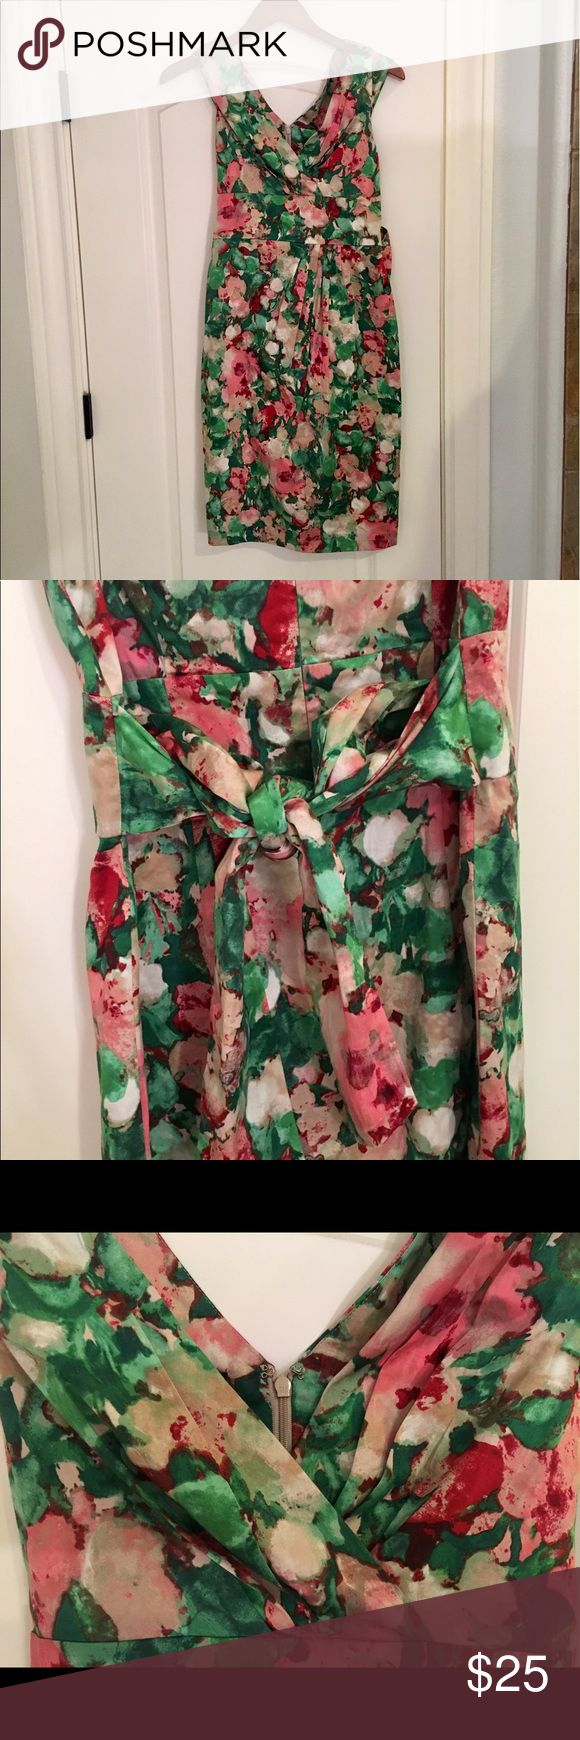 Talbots dress size 2 Gorgeous dress from Talbots, perfect for a summer garden party or the next Kentucky Derby! Ribbon ties into a bow in the back for extra cuteness. Only worn once, non smoking home. Excellent condition. Thank you! Talbots Dresses Midi